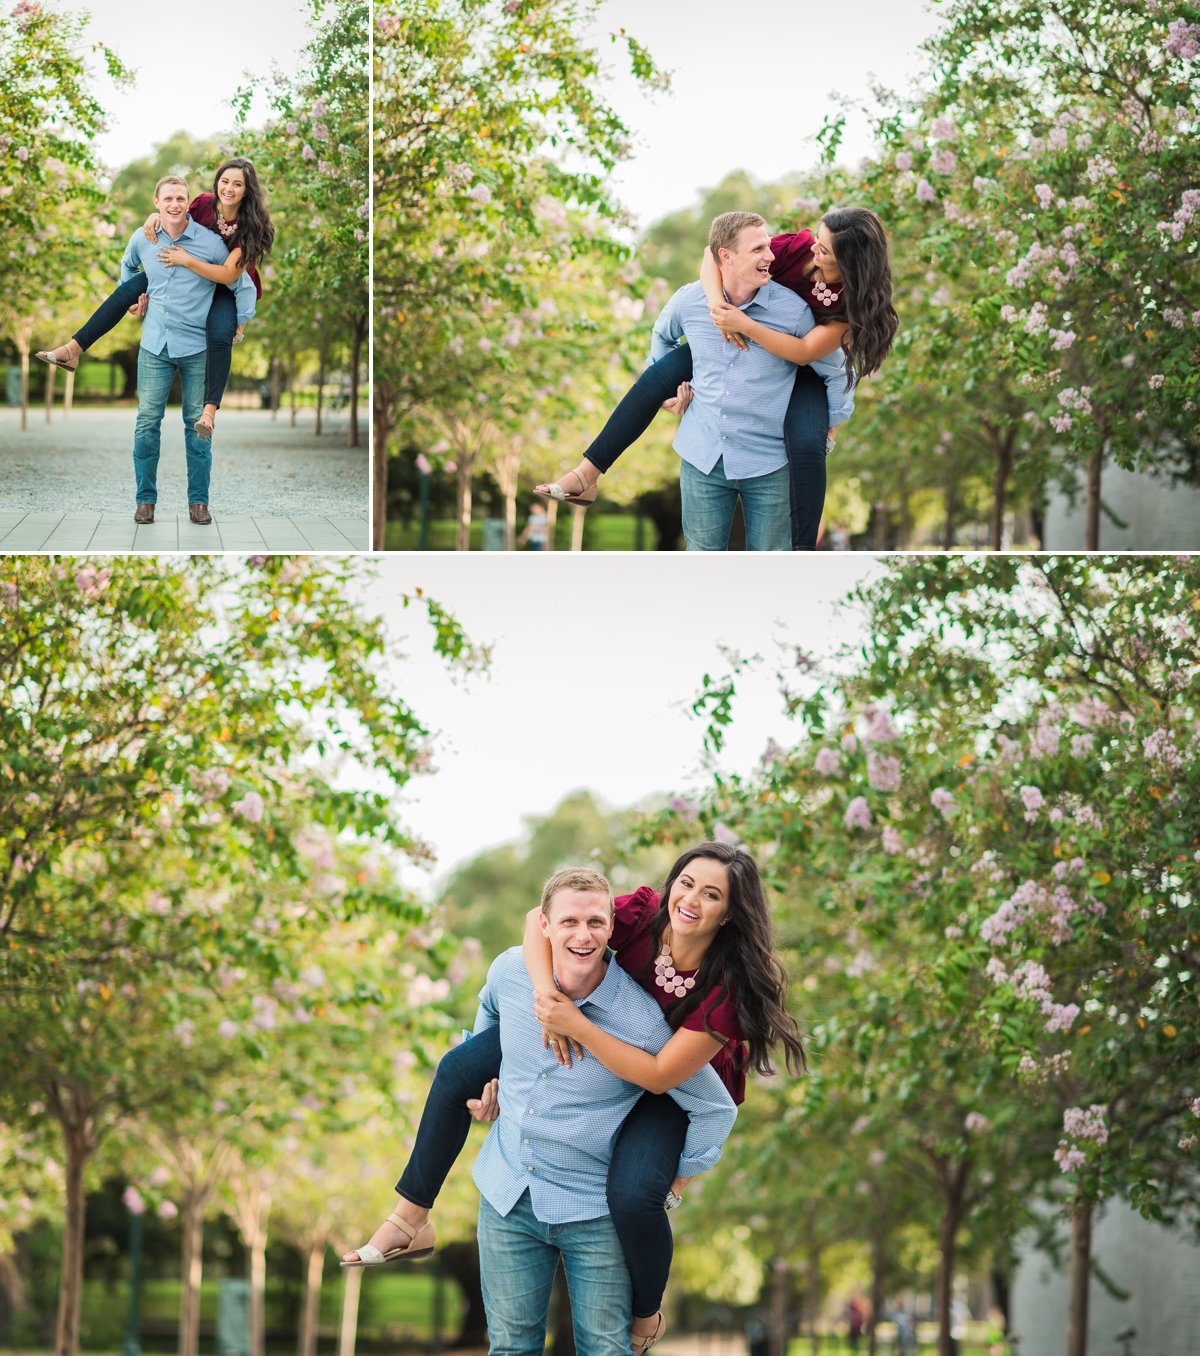 Spring Engagement Photos at Hermann Park